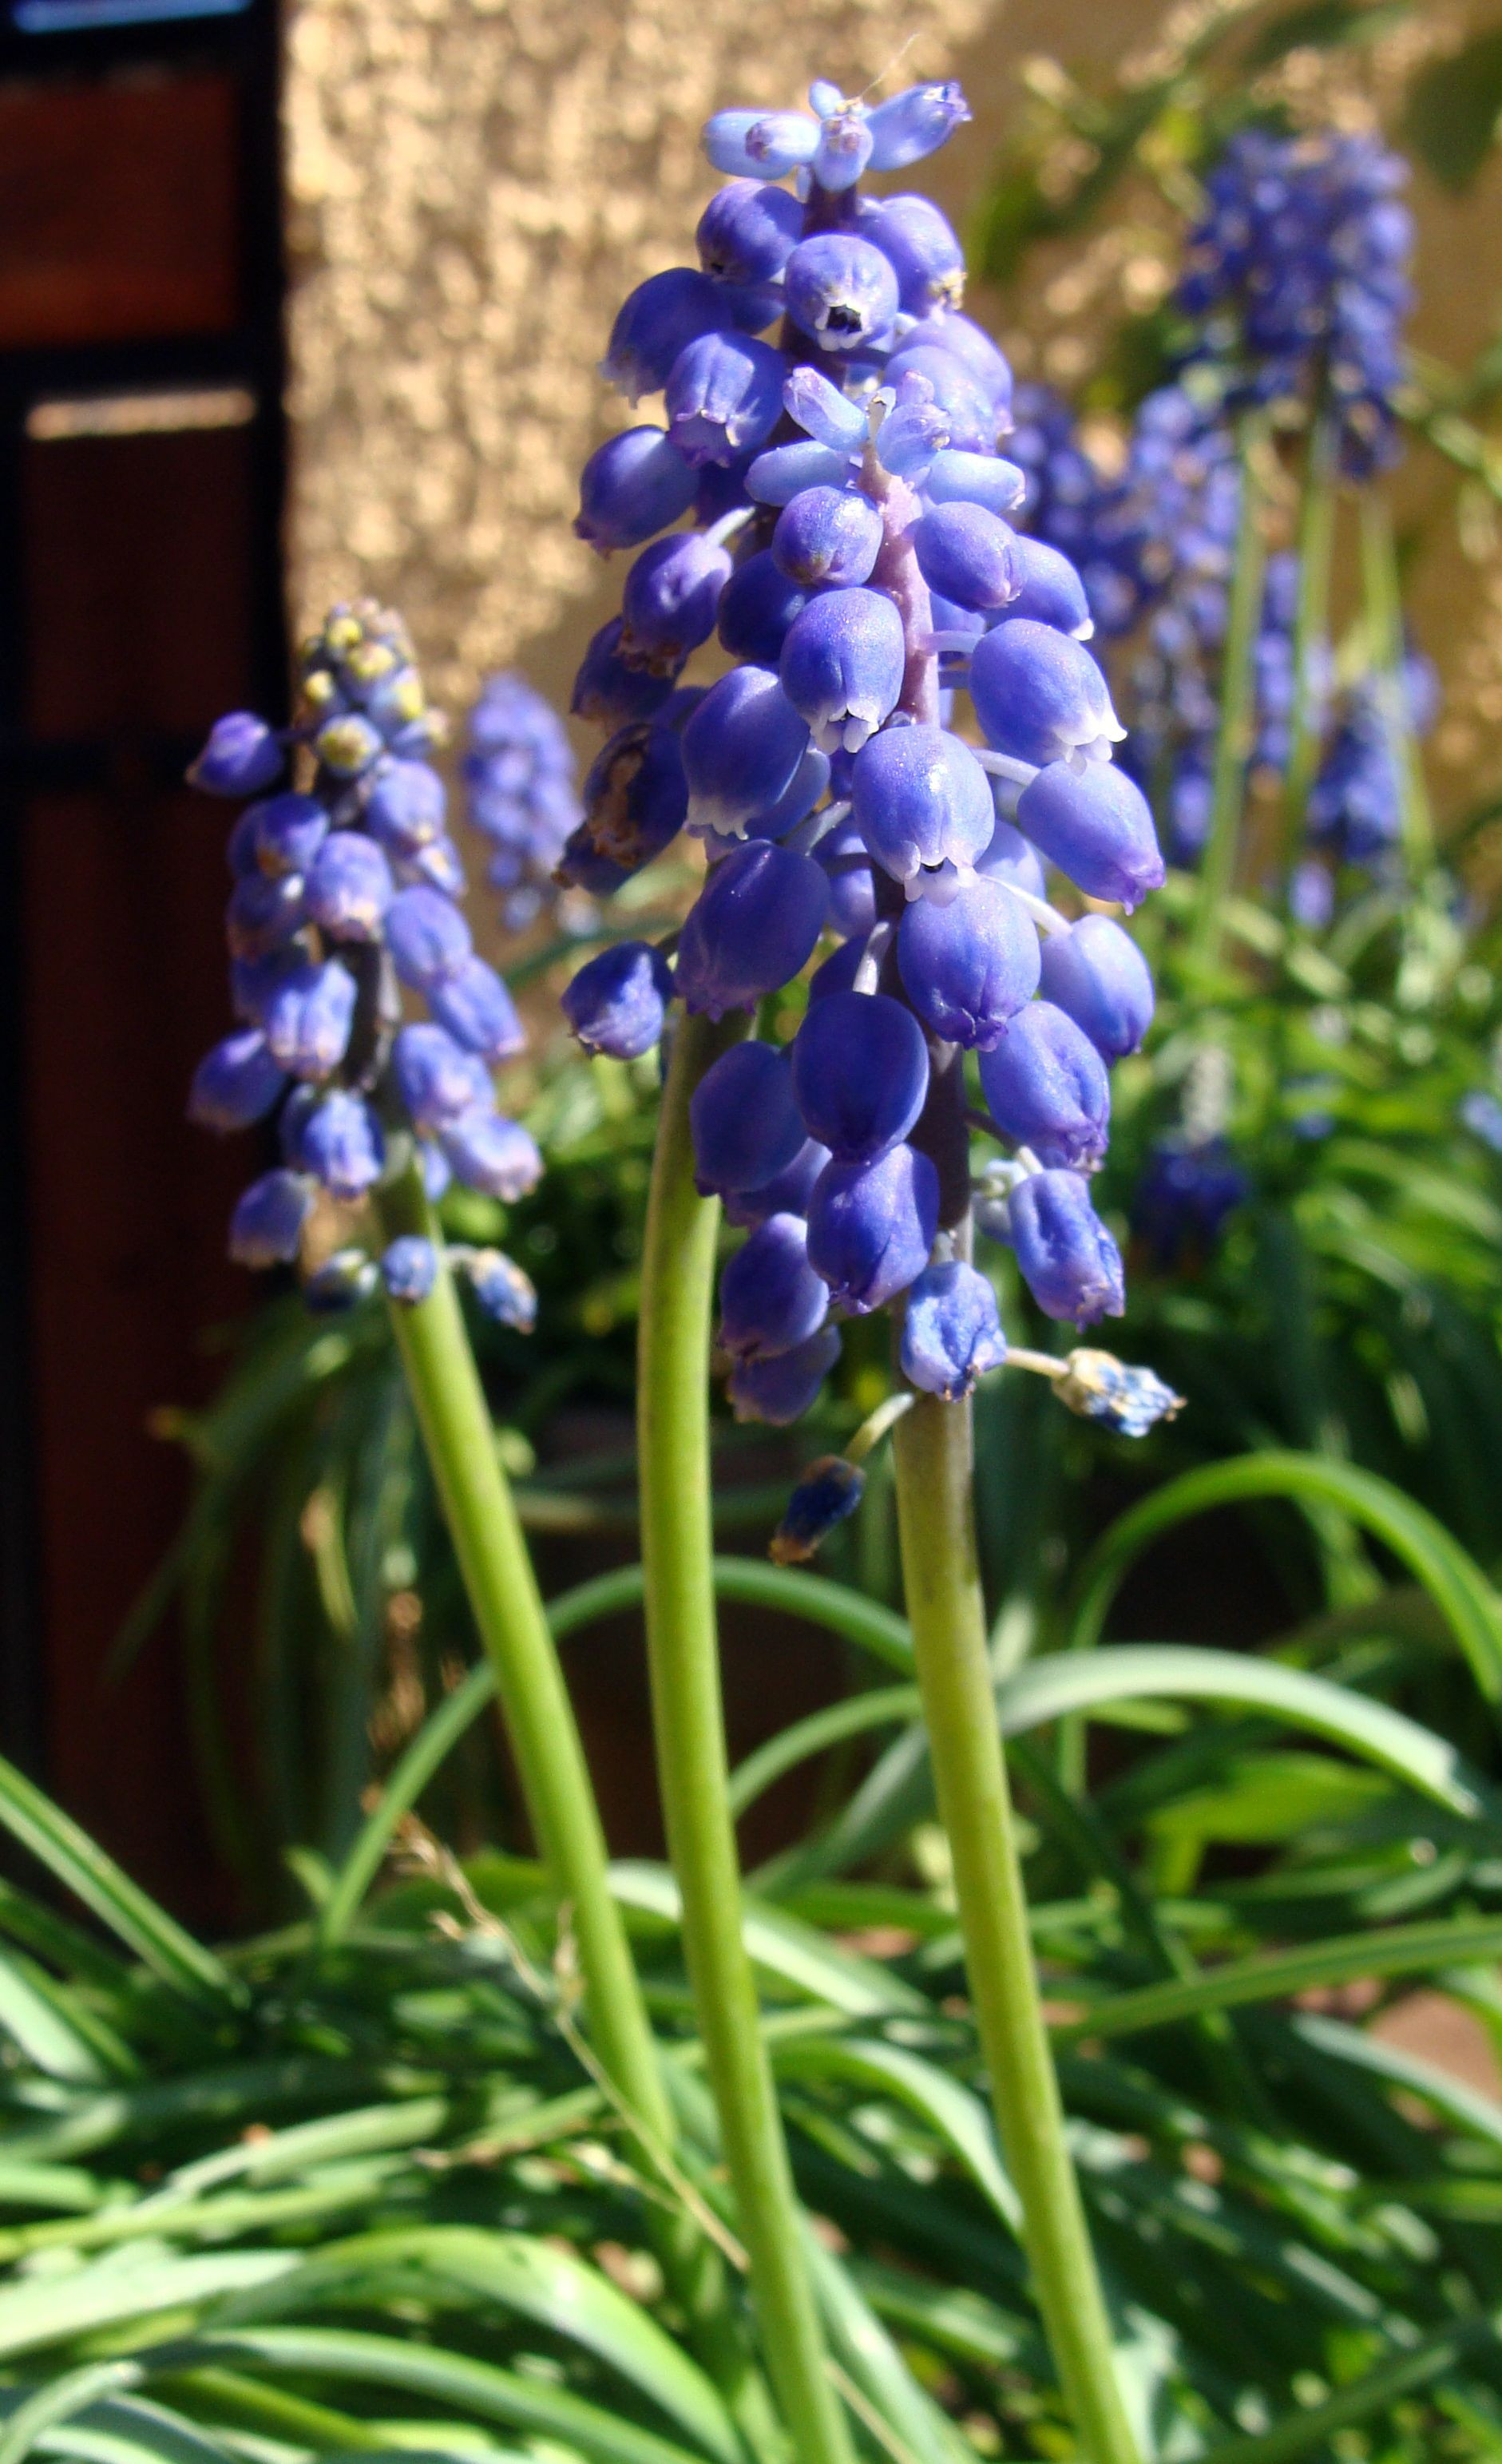 Muscari botryoides also known as Grape hyacinth blooms in late winter to very early spring